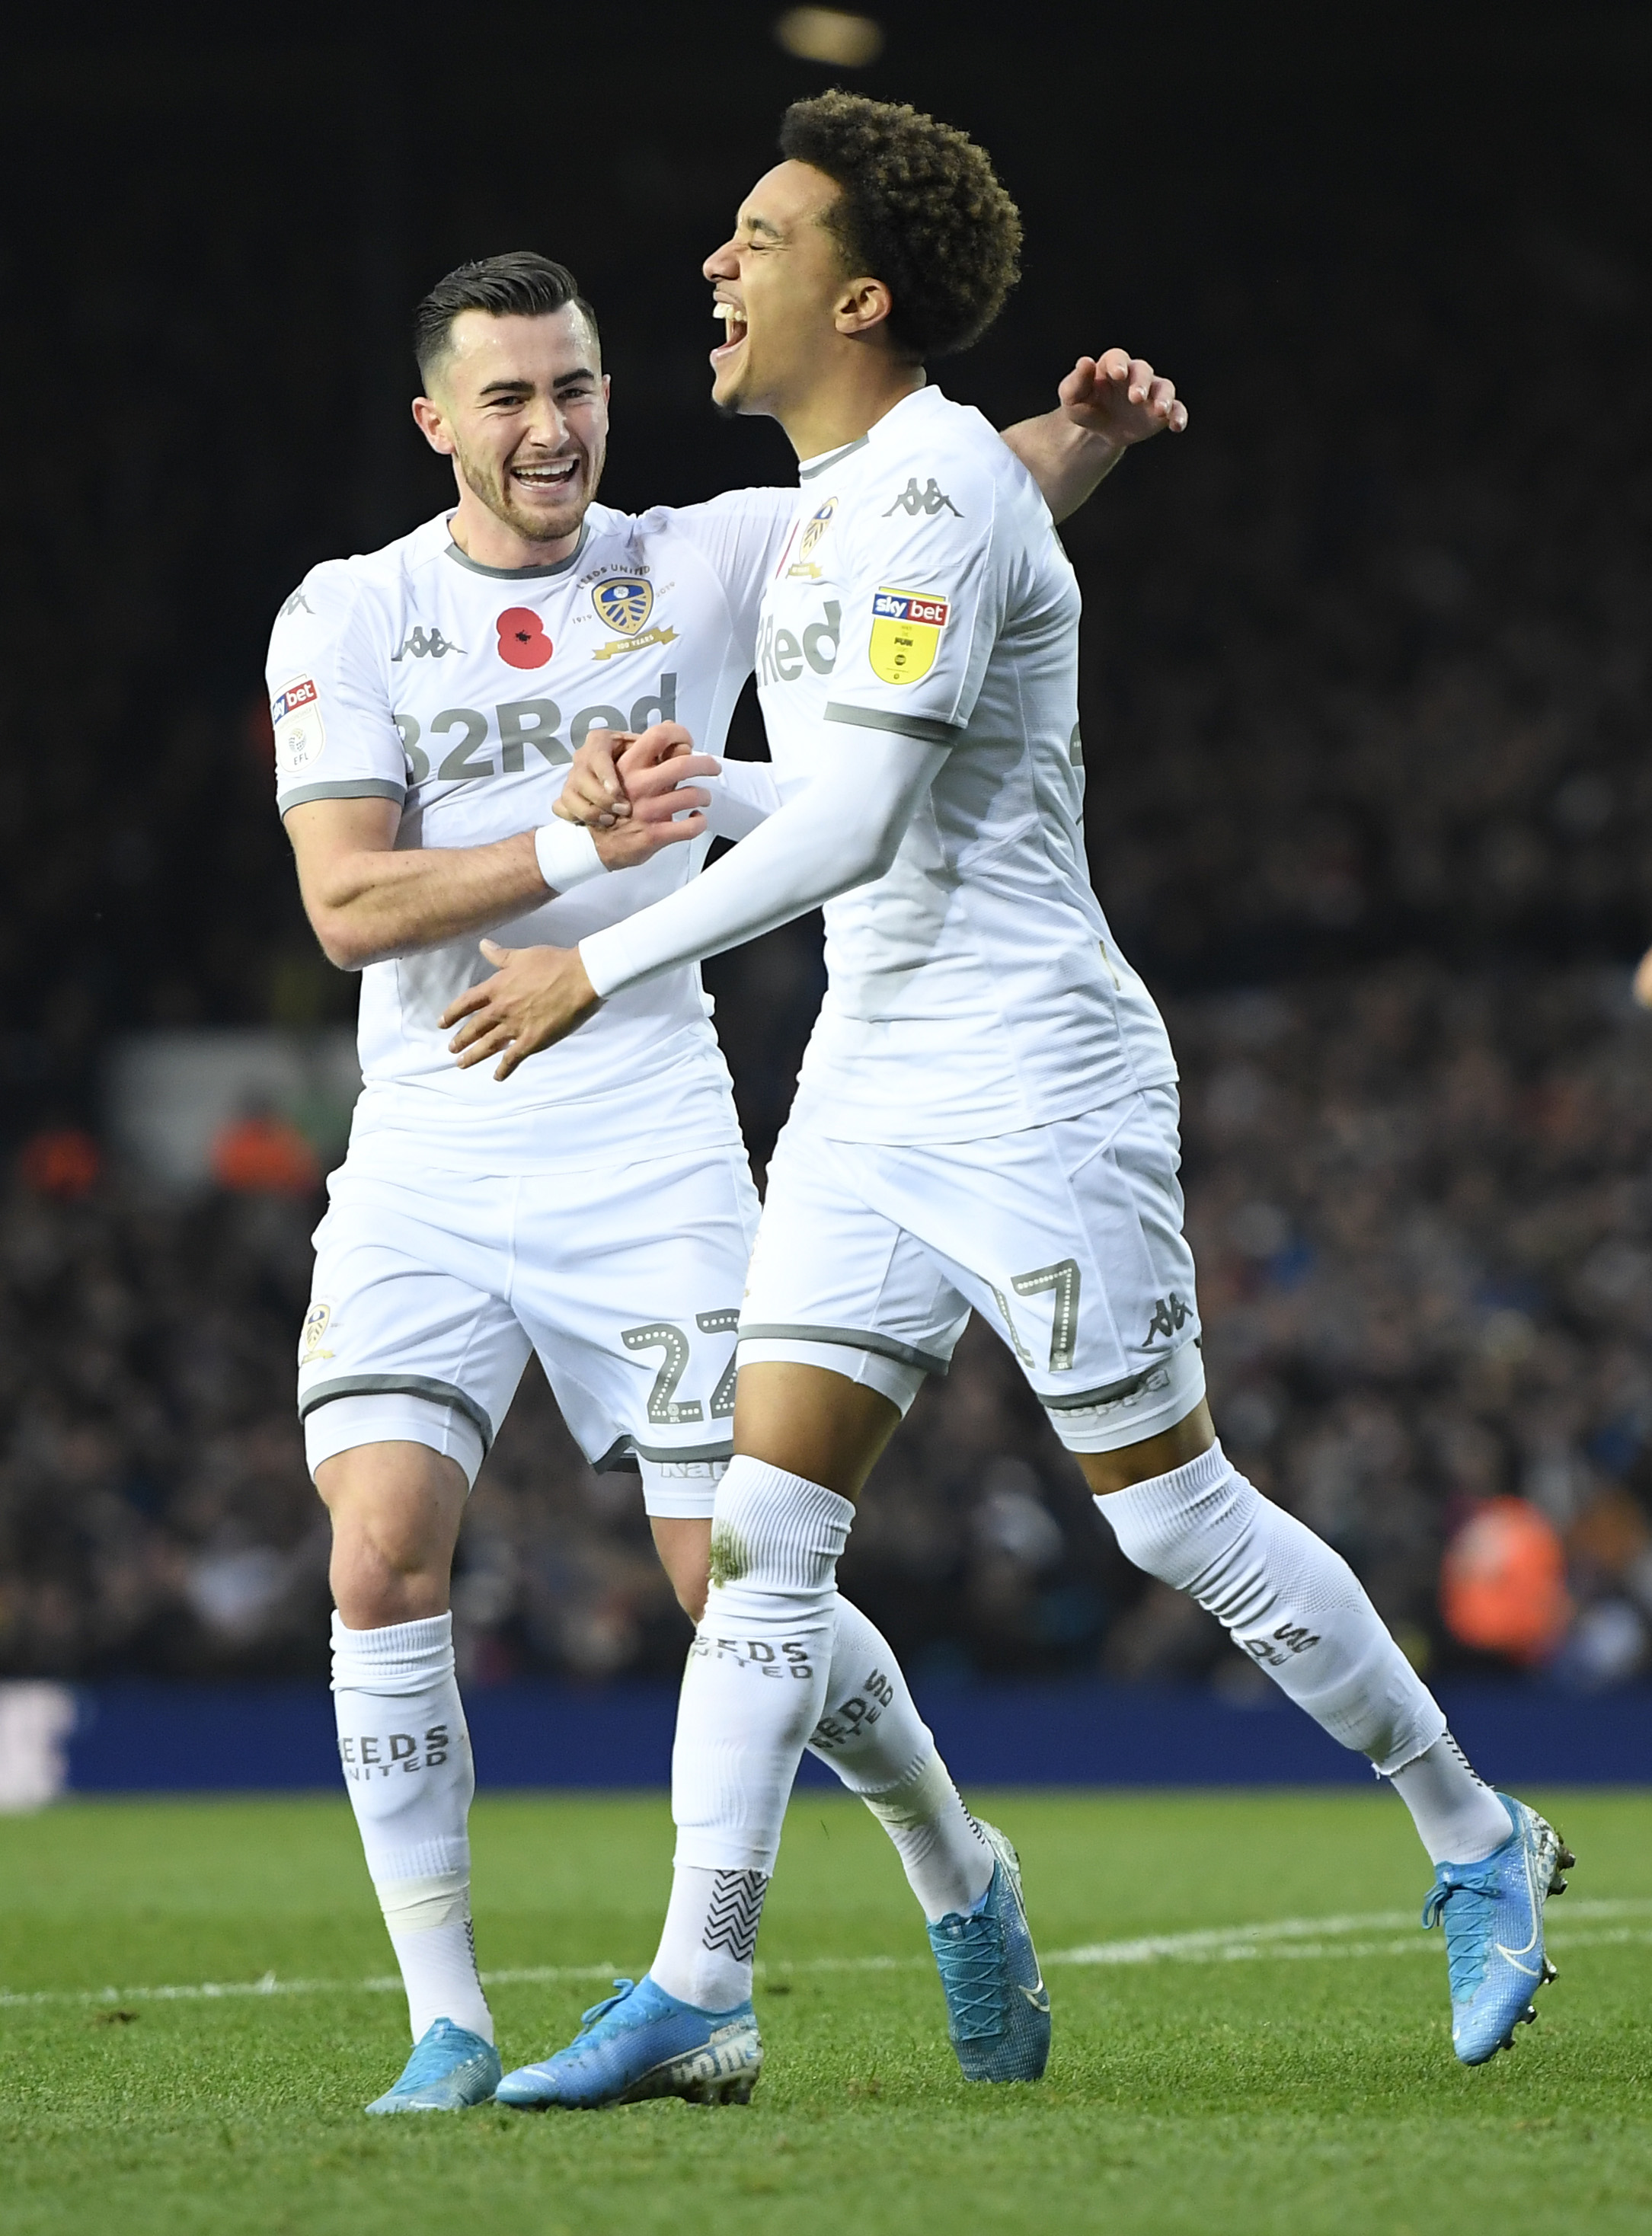 Leeds United v Blackburn Rovers - Sky Bet Championship